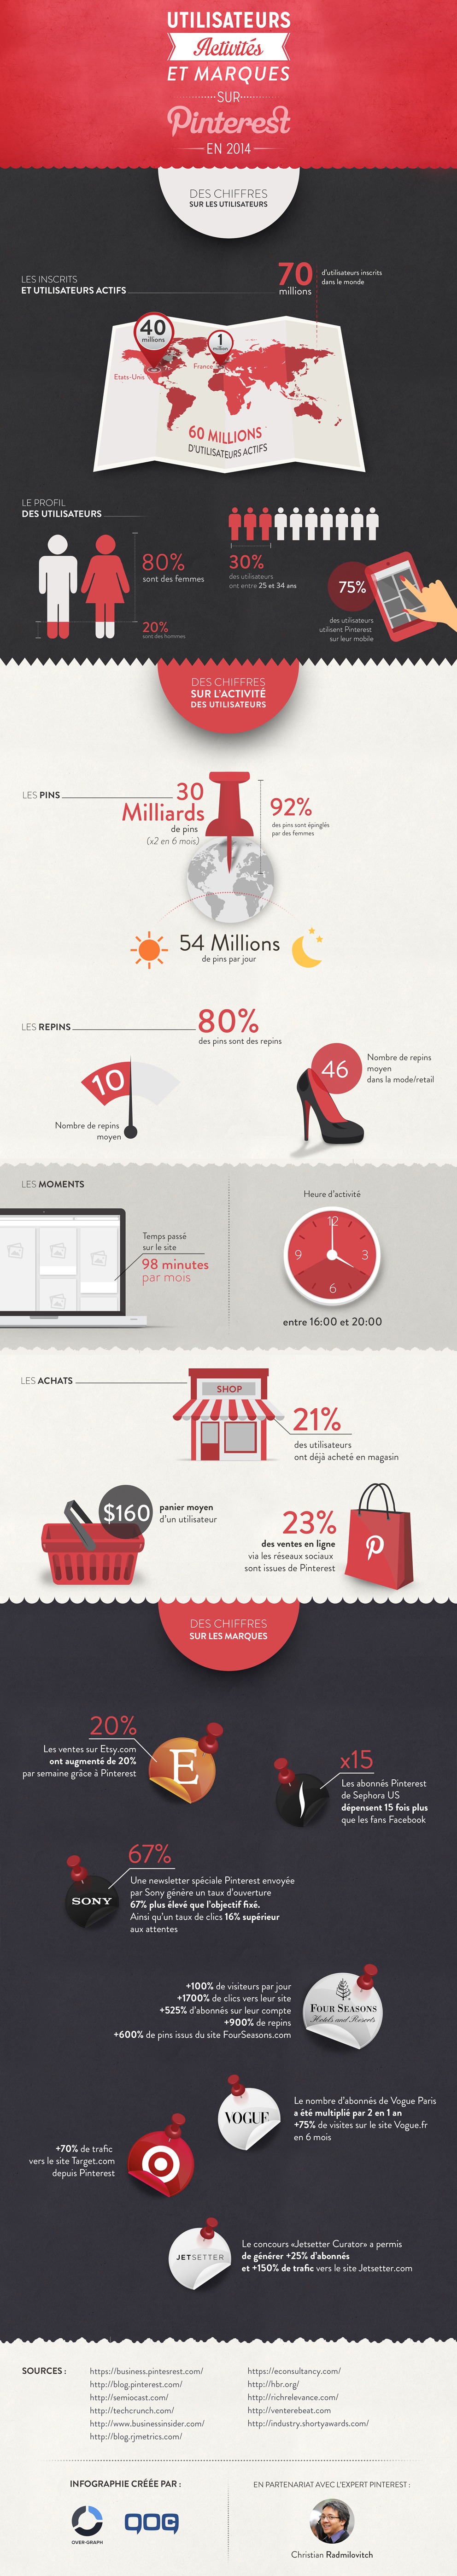 infographie-pinterest-1